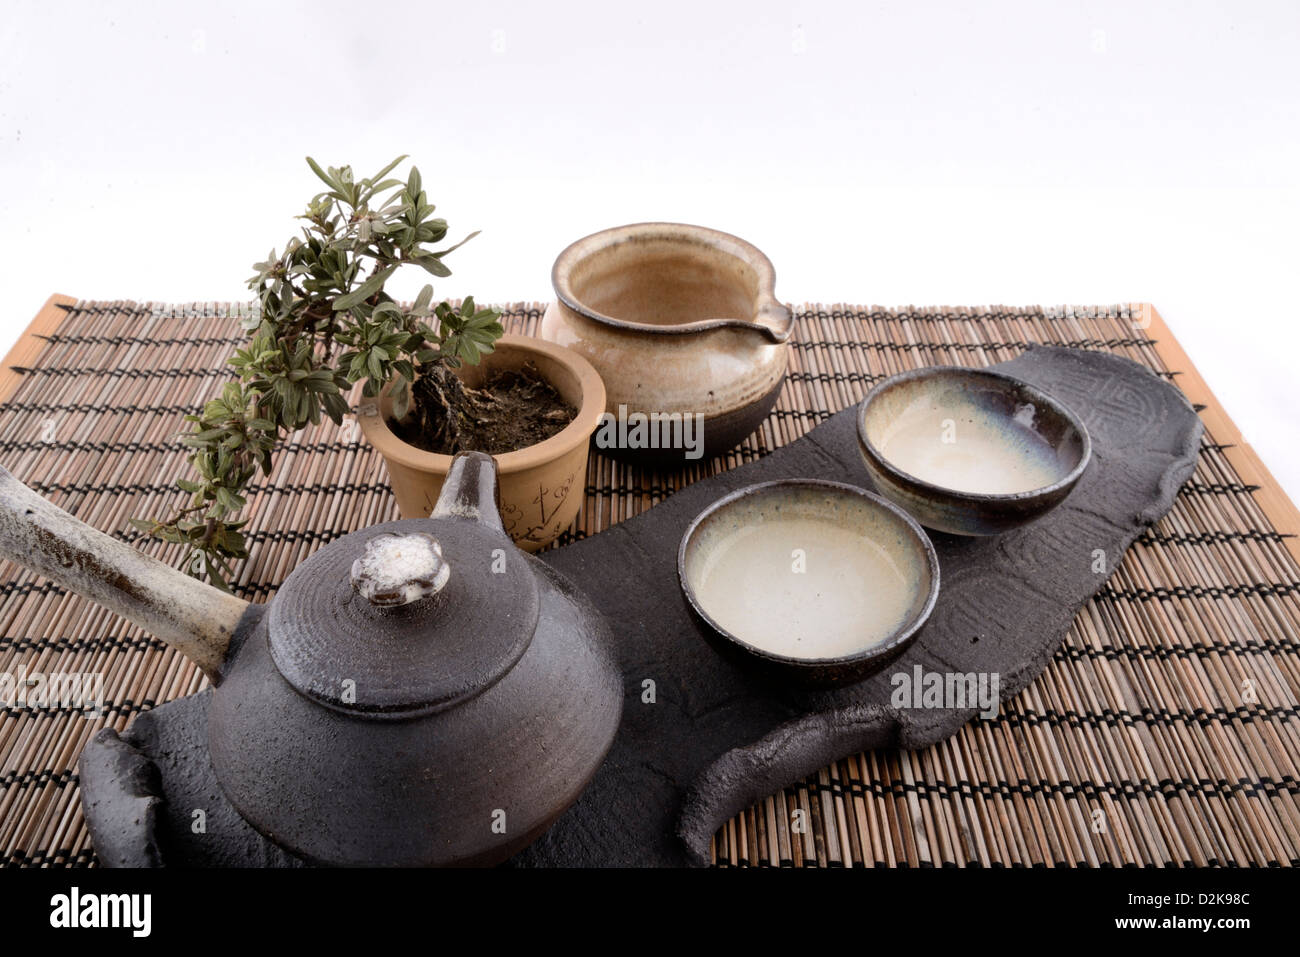 Chinese table setting - Product Image Of Traditional Chinese Tea Set On A Table Setting With White Seamless Background